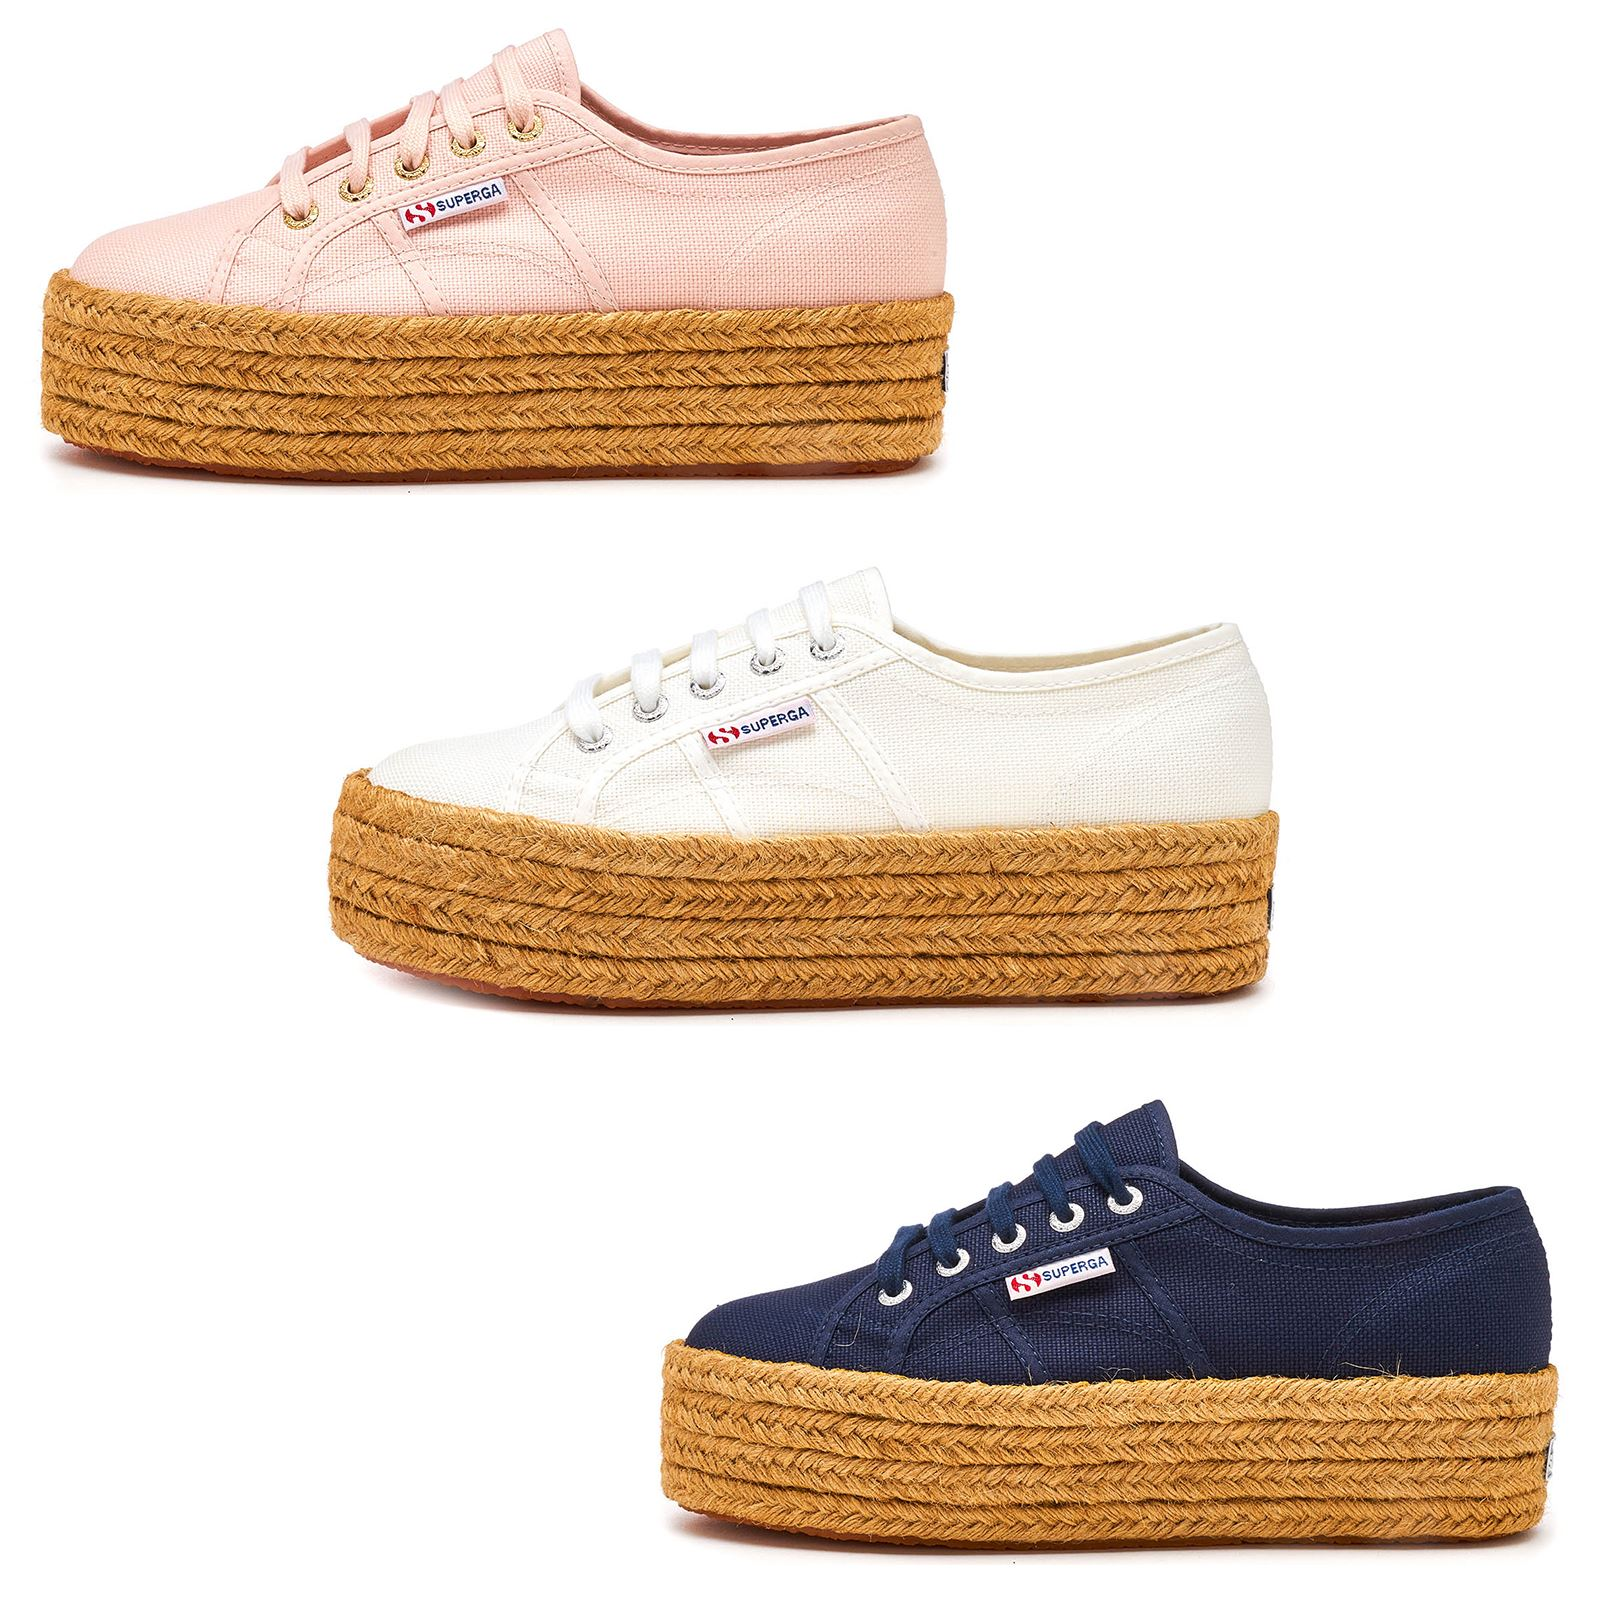 3a05a564892 Details about Superga 2790 Cotropew Platform Plimsoll Shoes in Pink